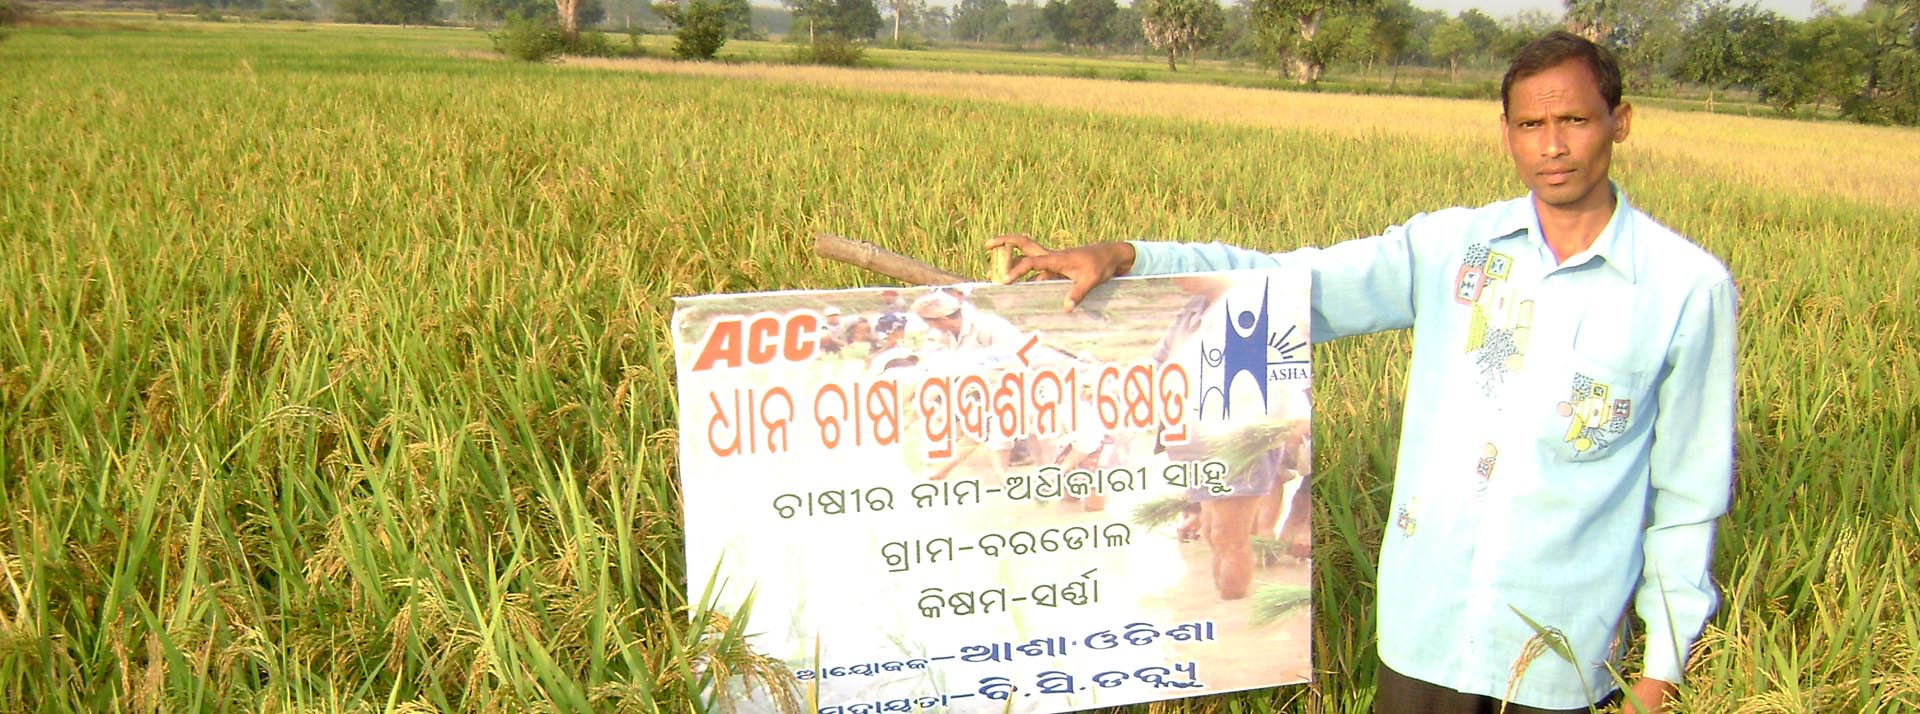 SRI method of Cultivation by ACC Project